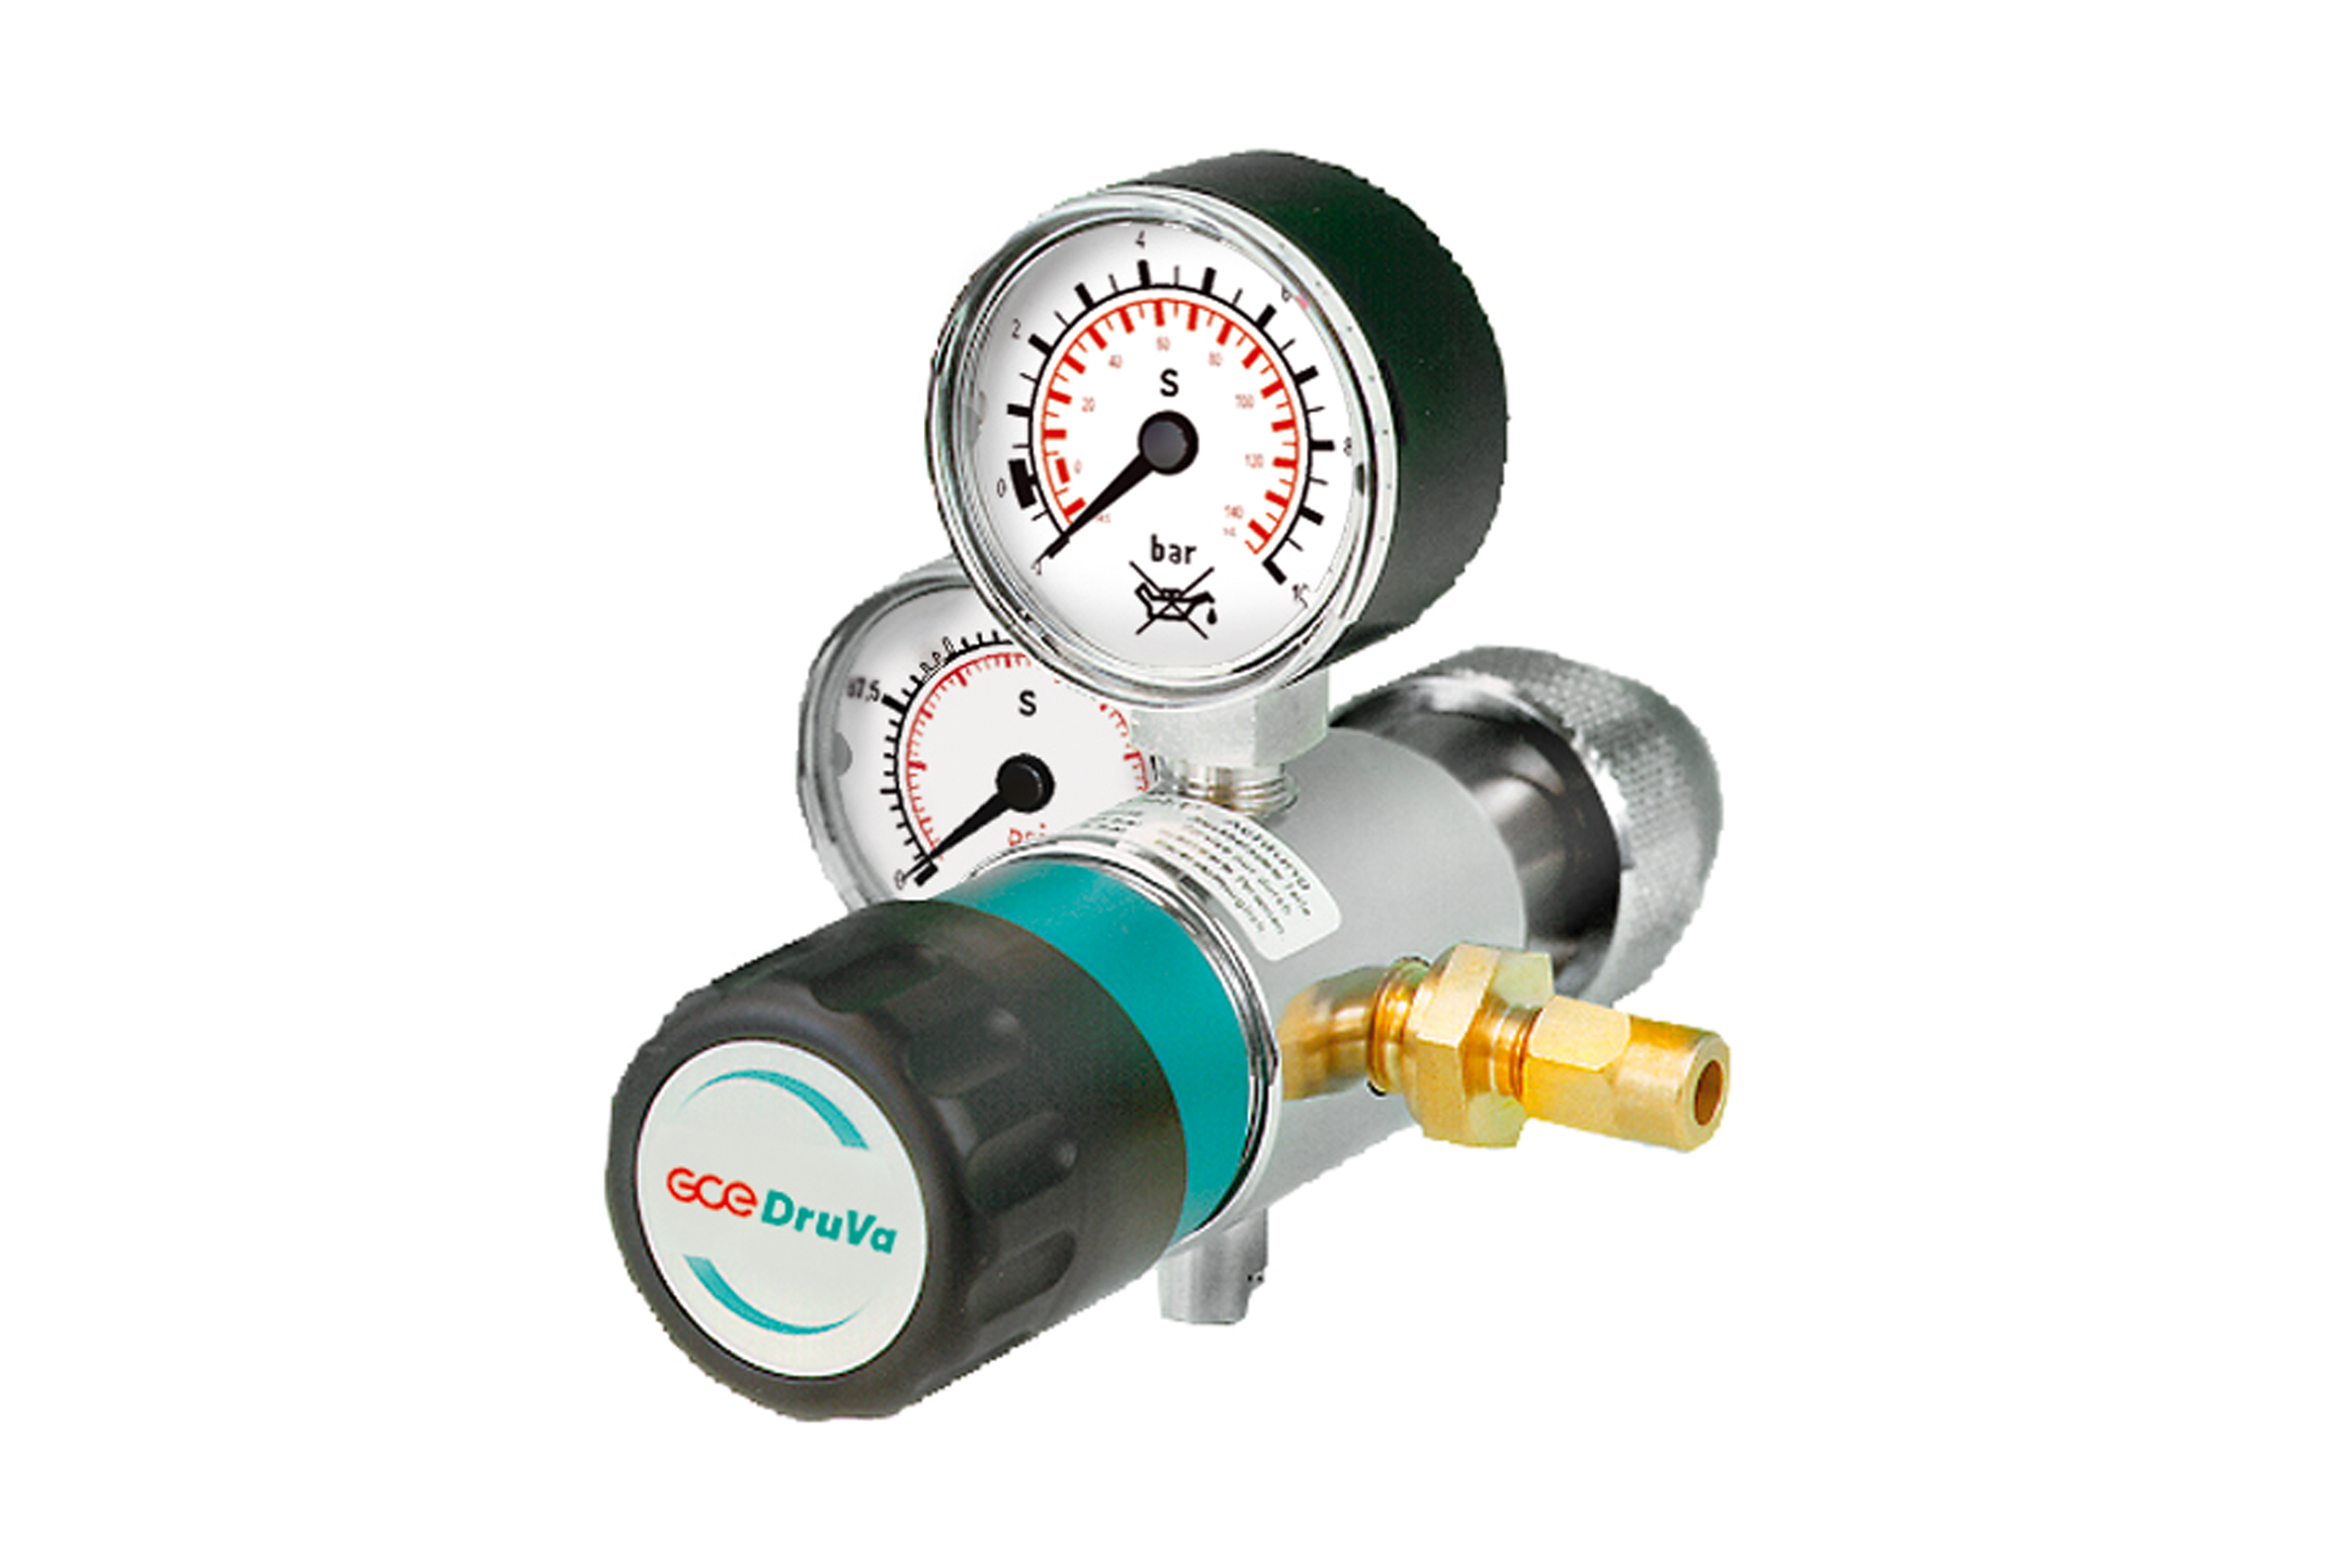 CYLINDER PRESSURE REGULATORS FMD 300-14/-18 page image